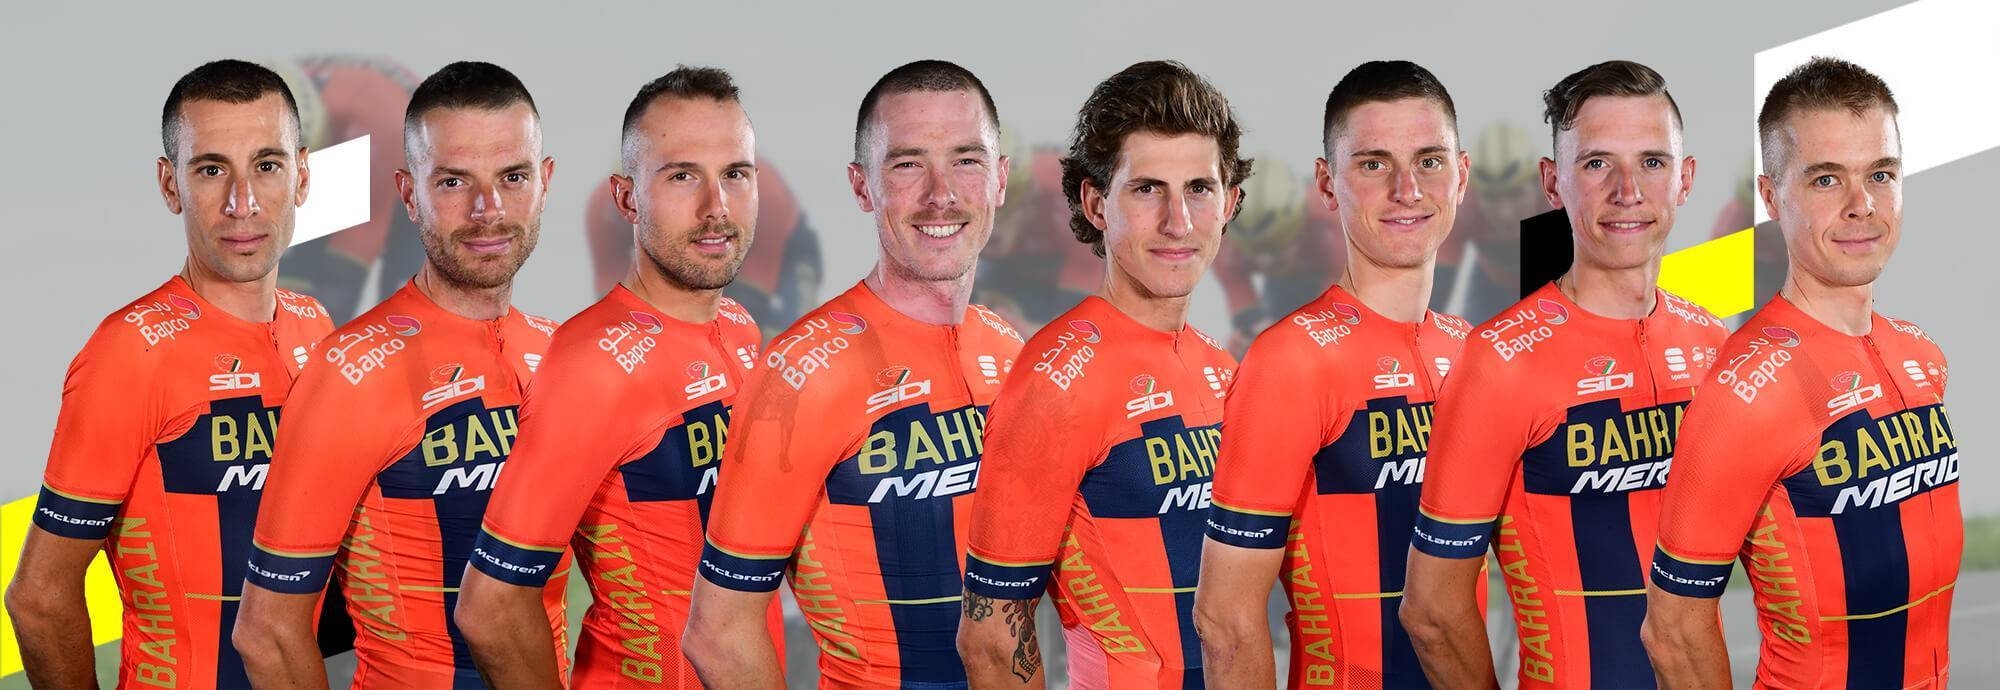 Header: BAHRAIN - MERIDA